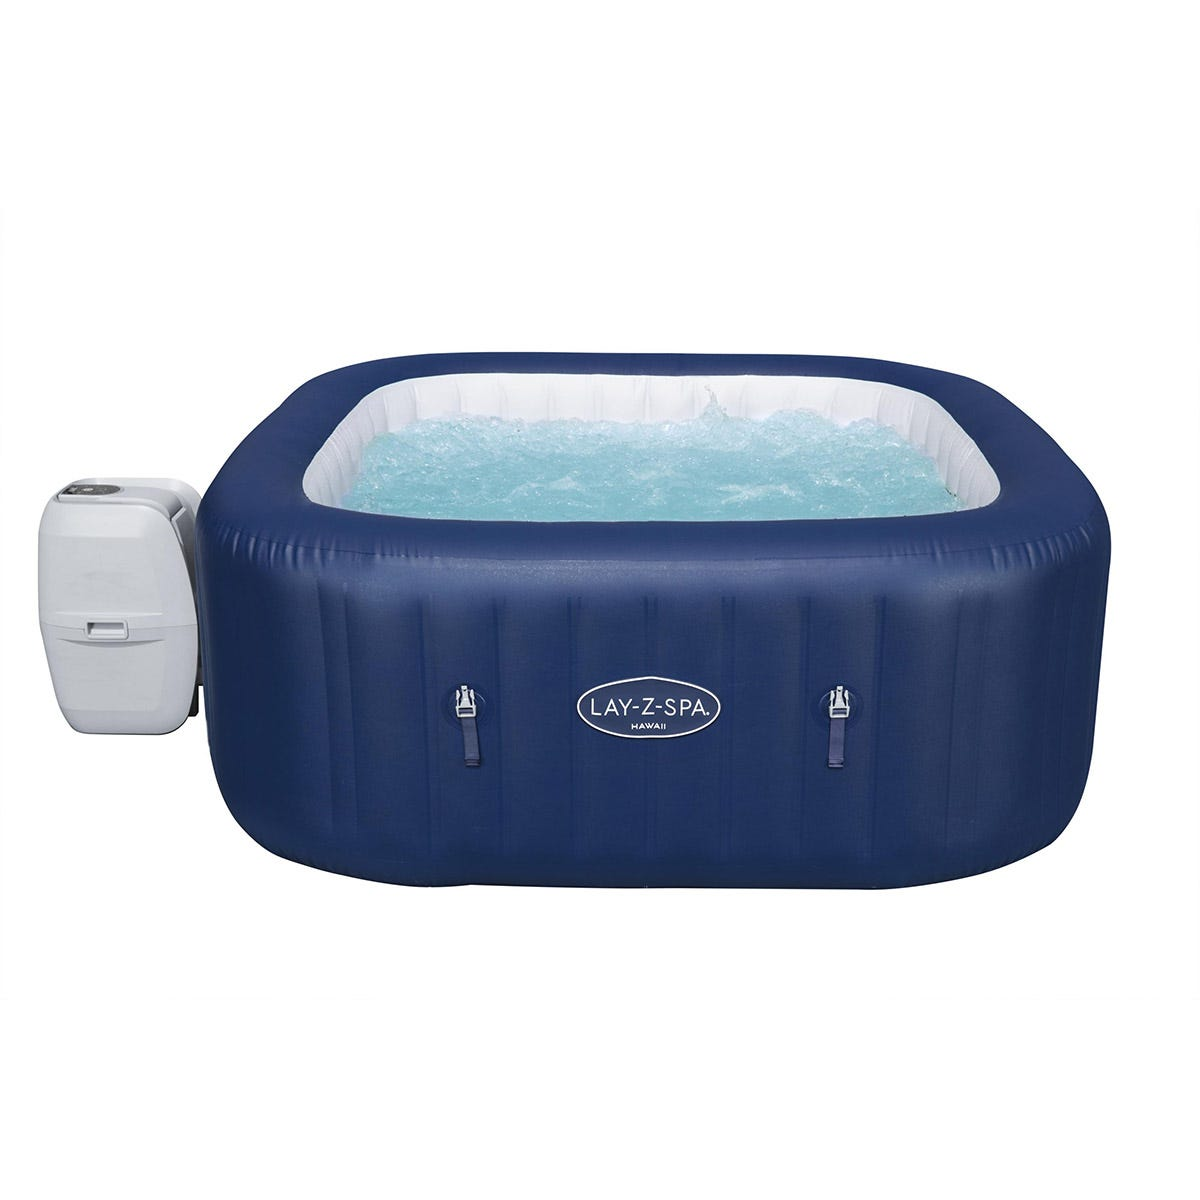 Lay-Z-Spa Hawaii AirJet Hot Tub Inflatable Spa, 4-6 Persons